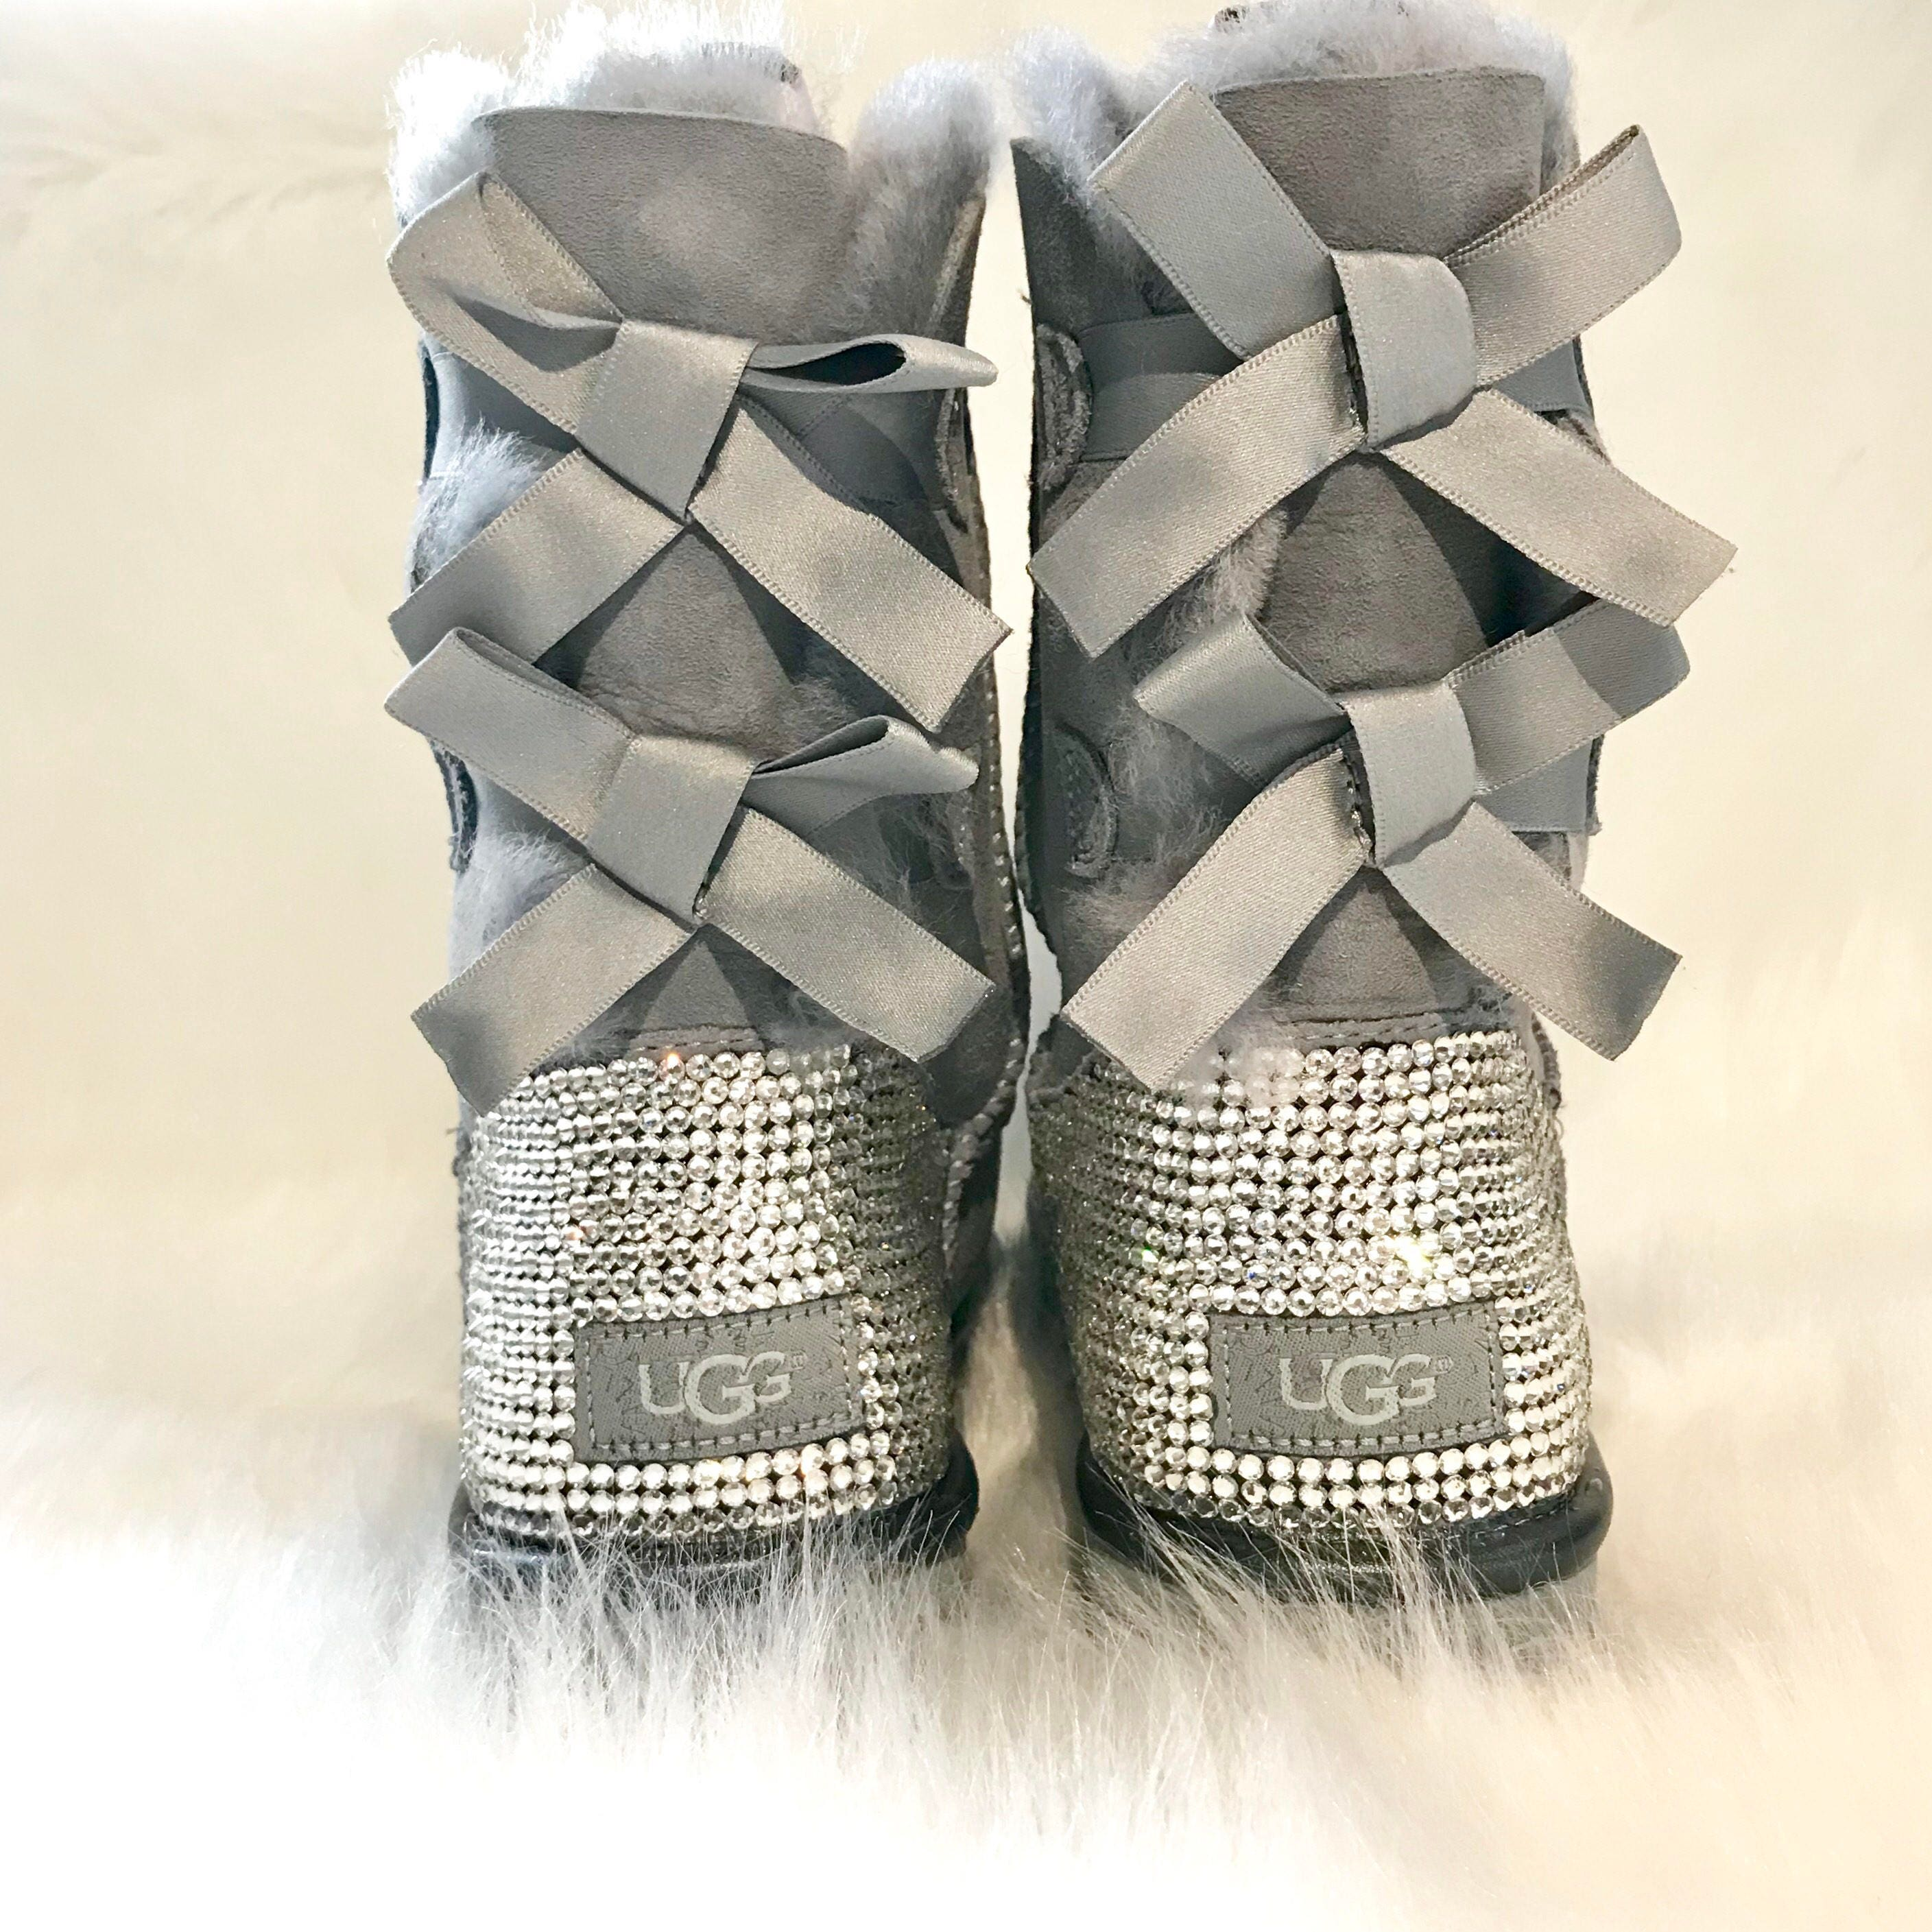 f9b6411d8cd bling UGG boots- FREE SHIPPING- gray crystal ugg boots- grey bedazzled  bailey bow uggs- custom women's ugg boots- bling uggs with bows-